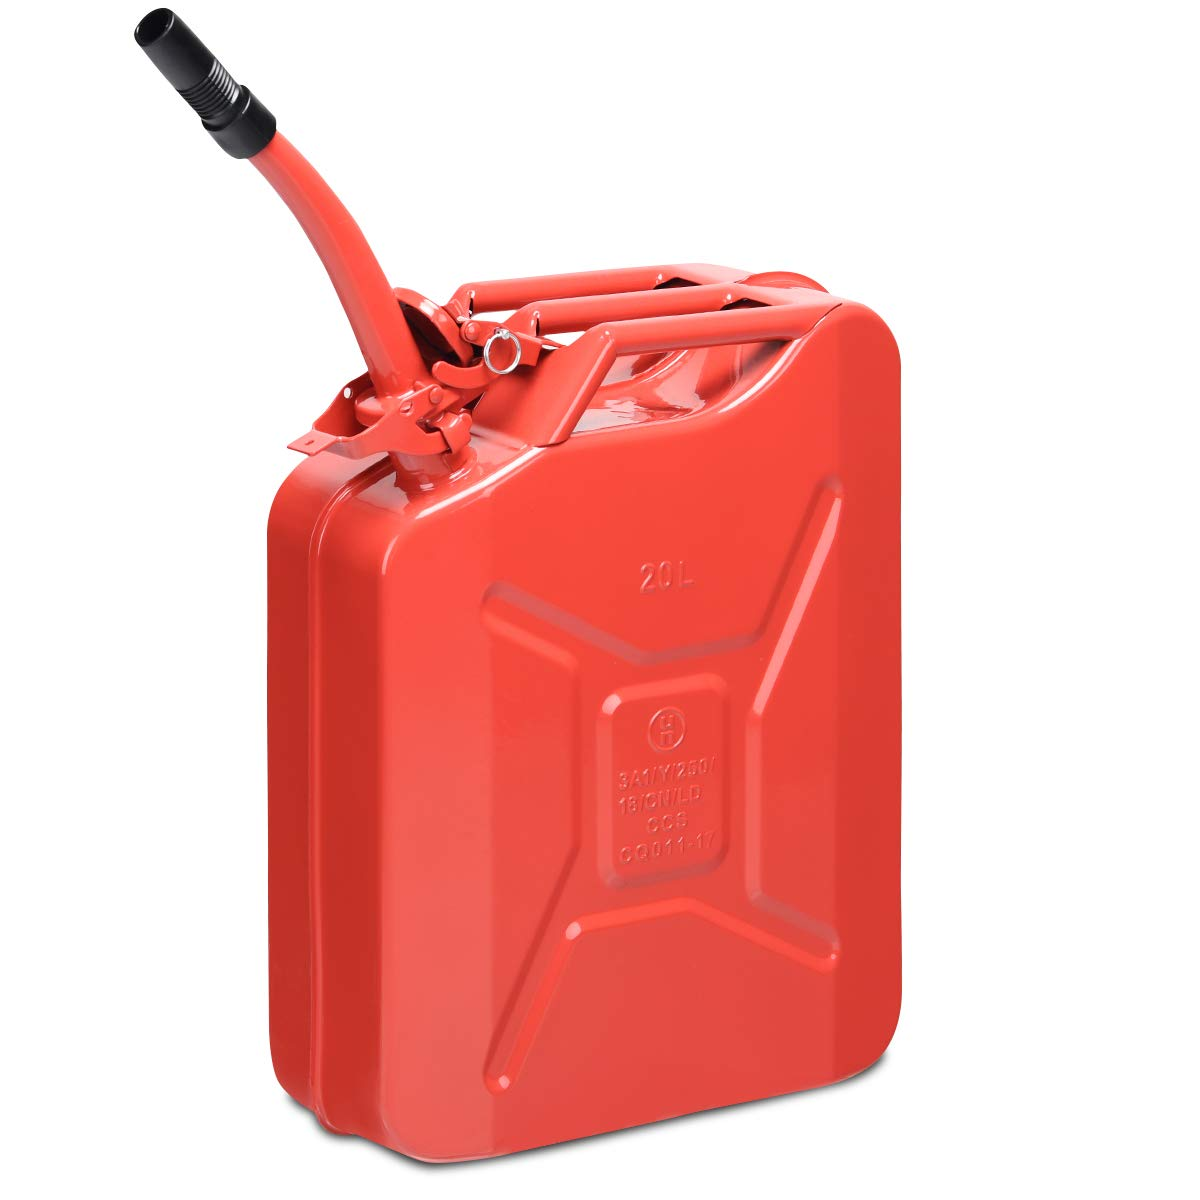 Goplus 20 Liter (5 Gallon) Jerry Fuel Can with Flexible Spout, Portable Jerry Can Fuel Tank Steel Fuel Can, Fuels Gasoline Cars, Trucks, Equipment (Red) by Goplus